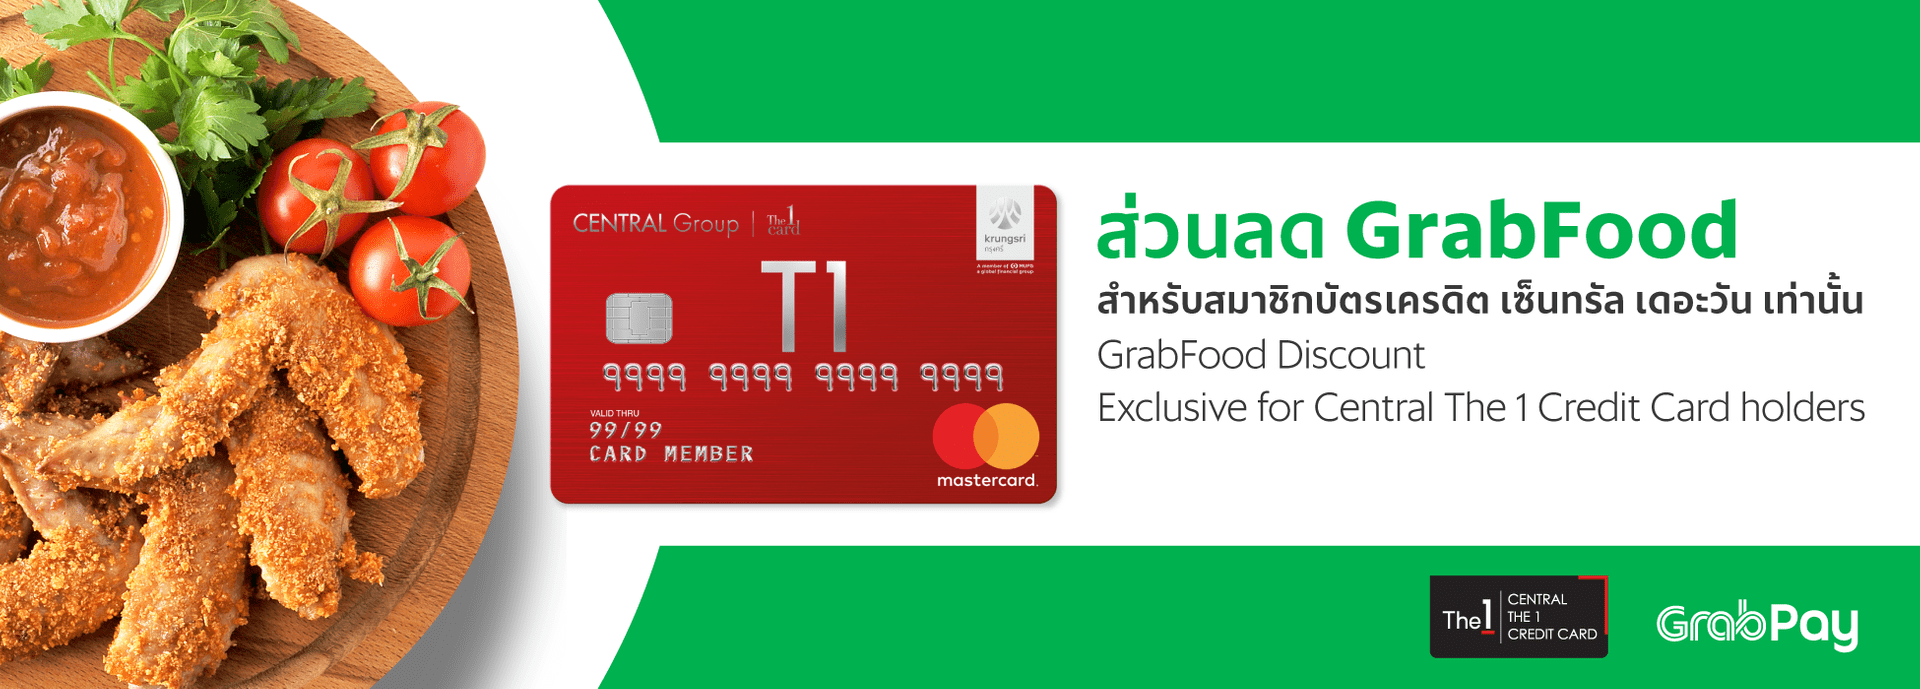 Here's GrabFood Exclusive Discount for Central The 1 Credit